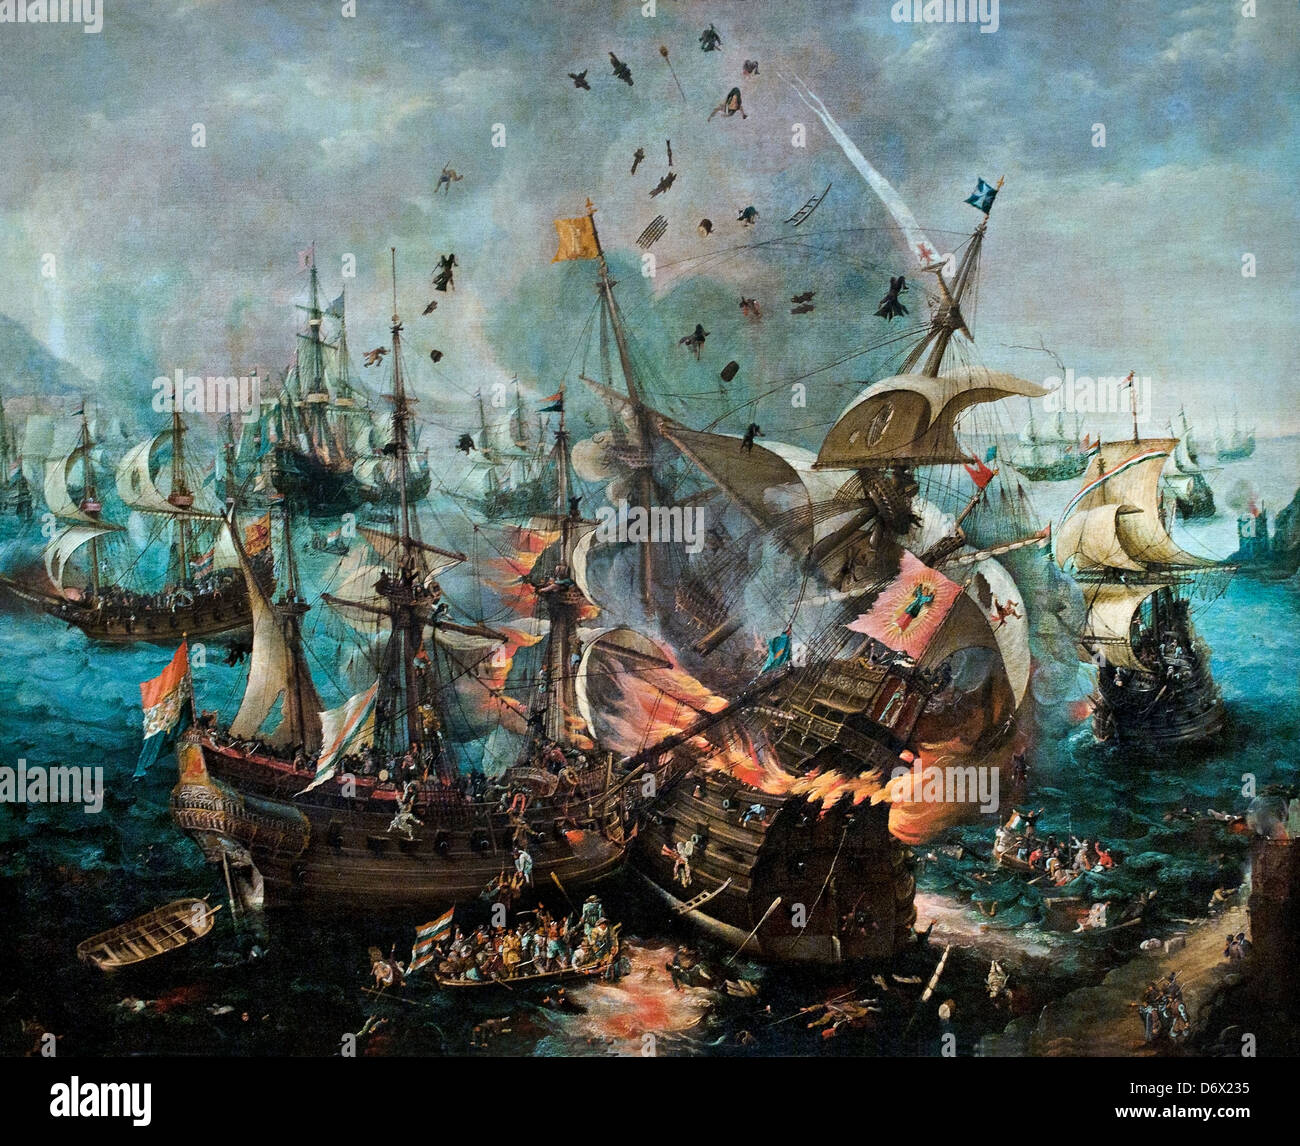 The Explosion of the Spanish Flagship during the Battle of Gibraltar 1621 Cornelis Claesz van Wieringen Dutch Netherlands - Stock Image